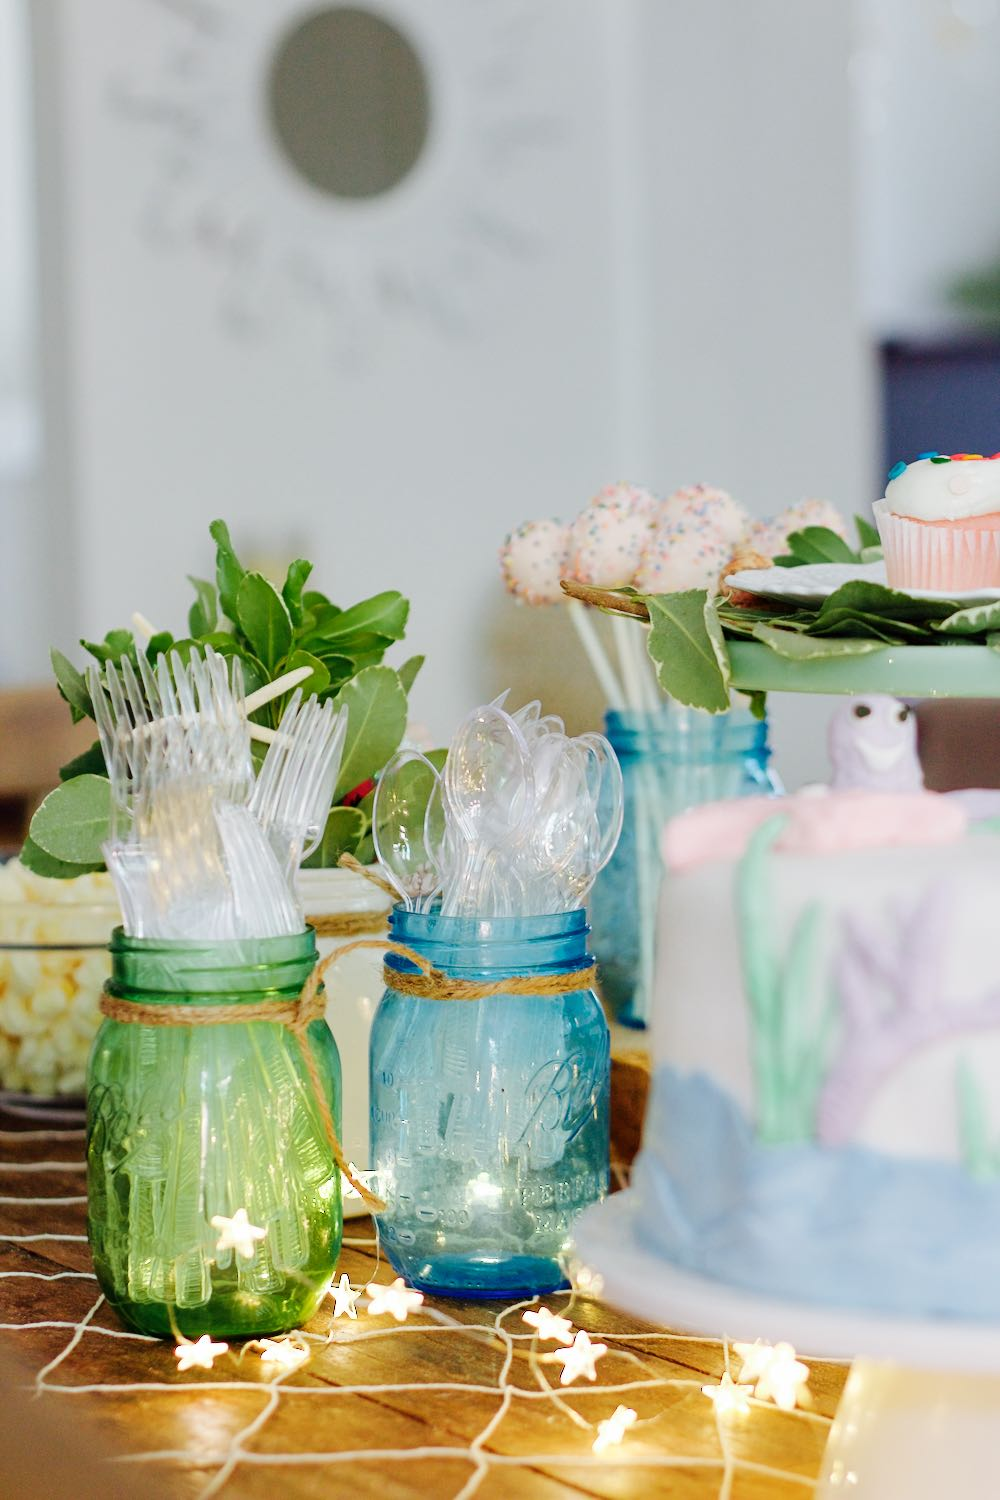 Decor ideas for a chic and elegant little girl's birthday party